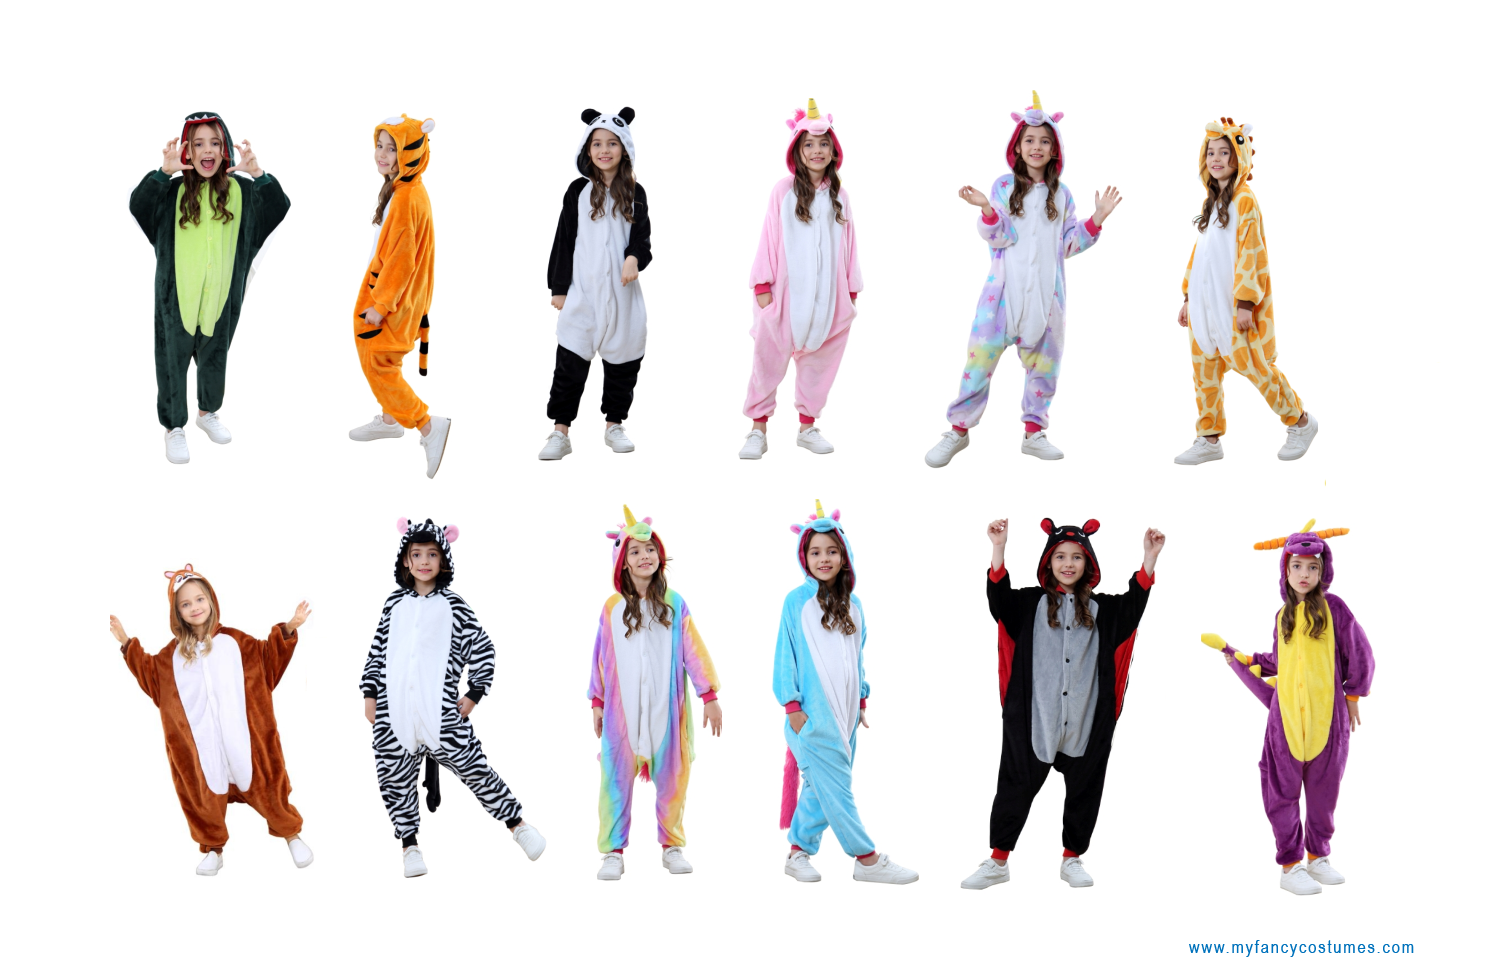 animal onesie, kis costumes, party costumes, carnival costumes